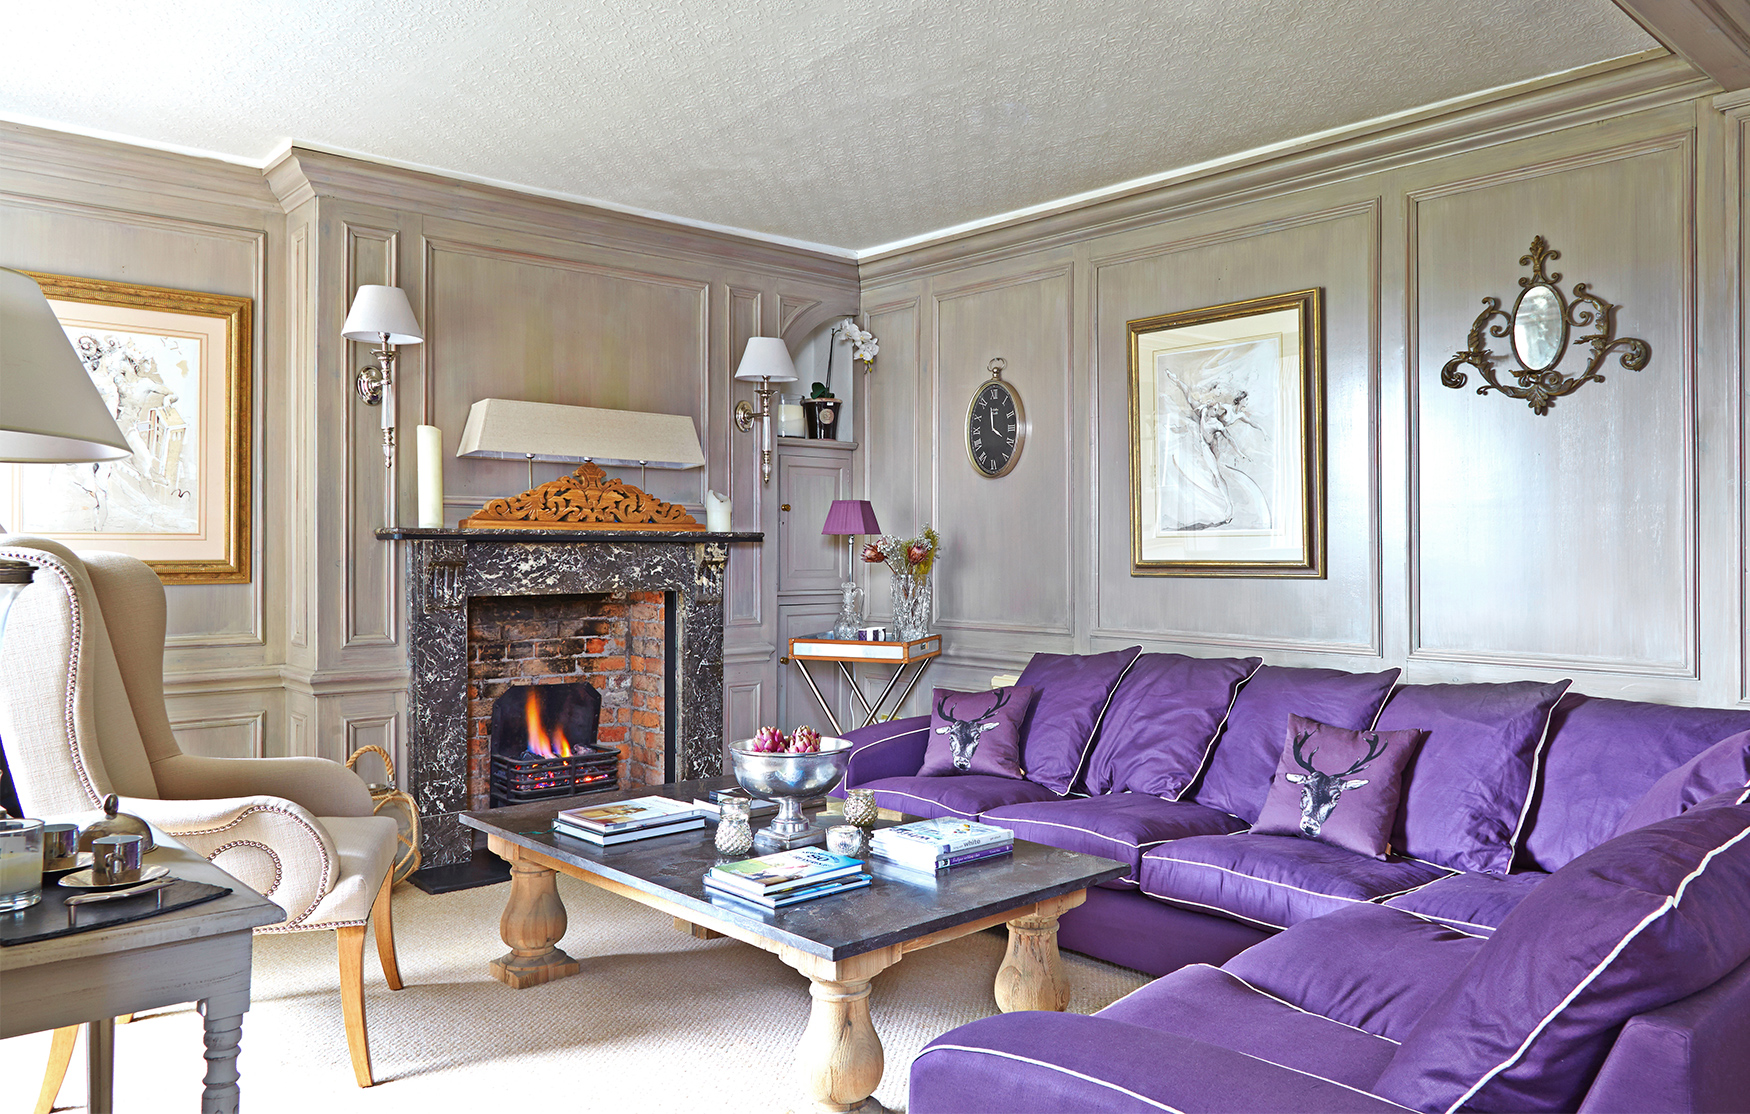 jess-weeks-interiors%interior-design%marlboroughjess-weeks-marlborough-copy85 THE HIGH STREET